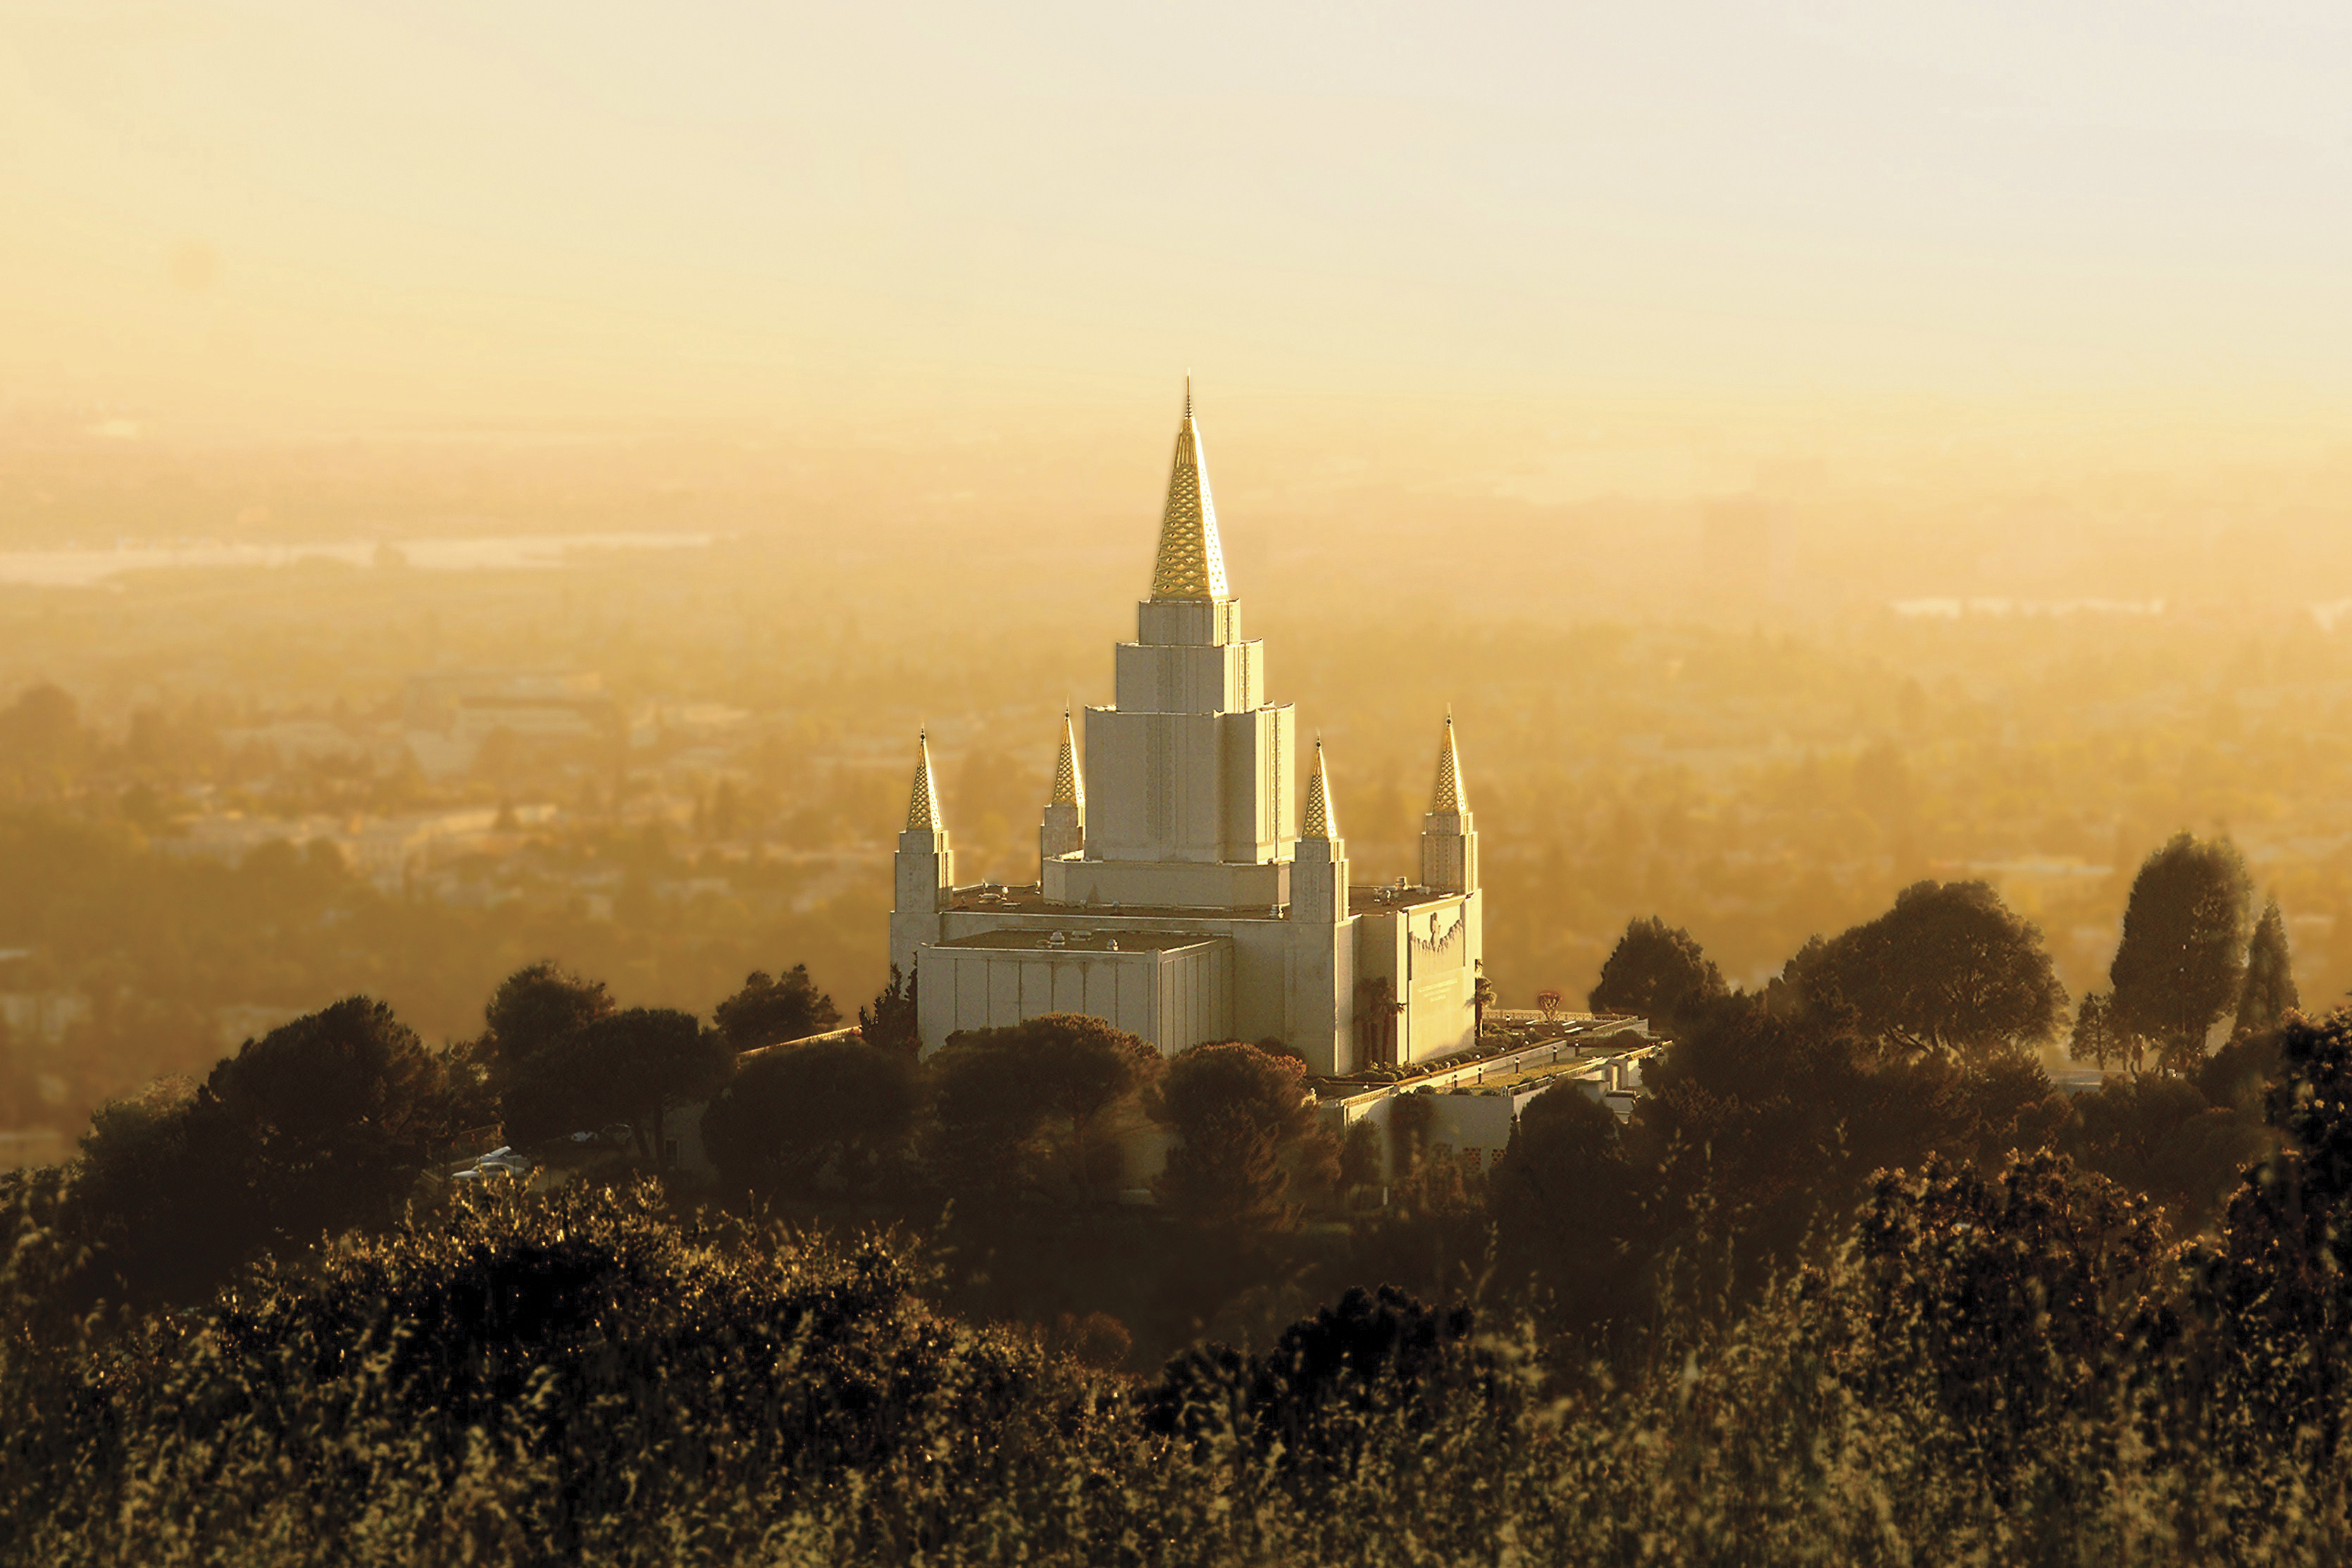 The Oakland California Temple at sunset, including scenery.